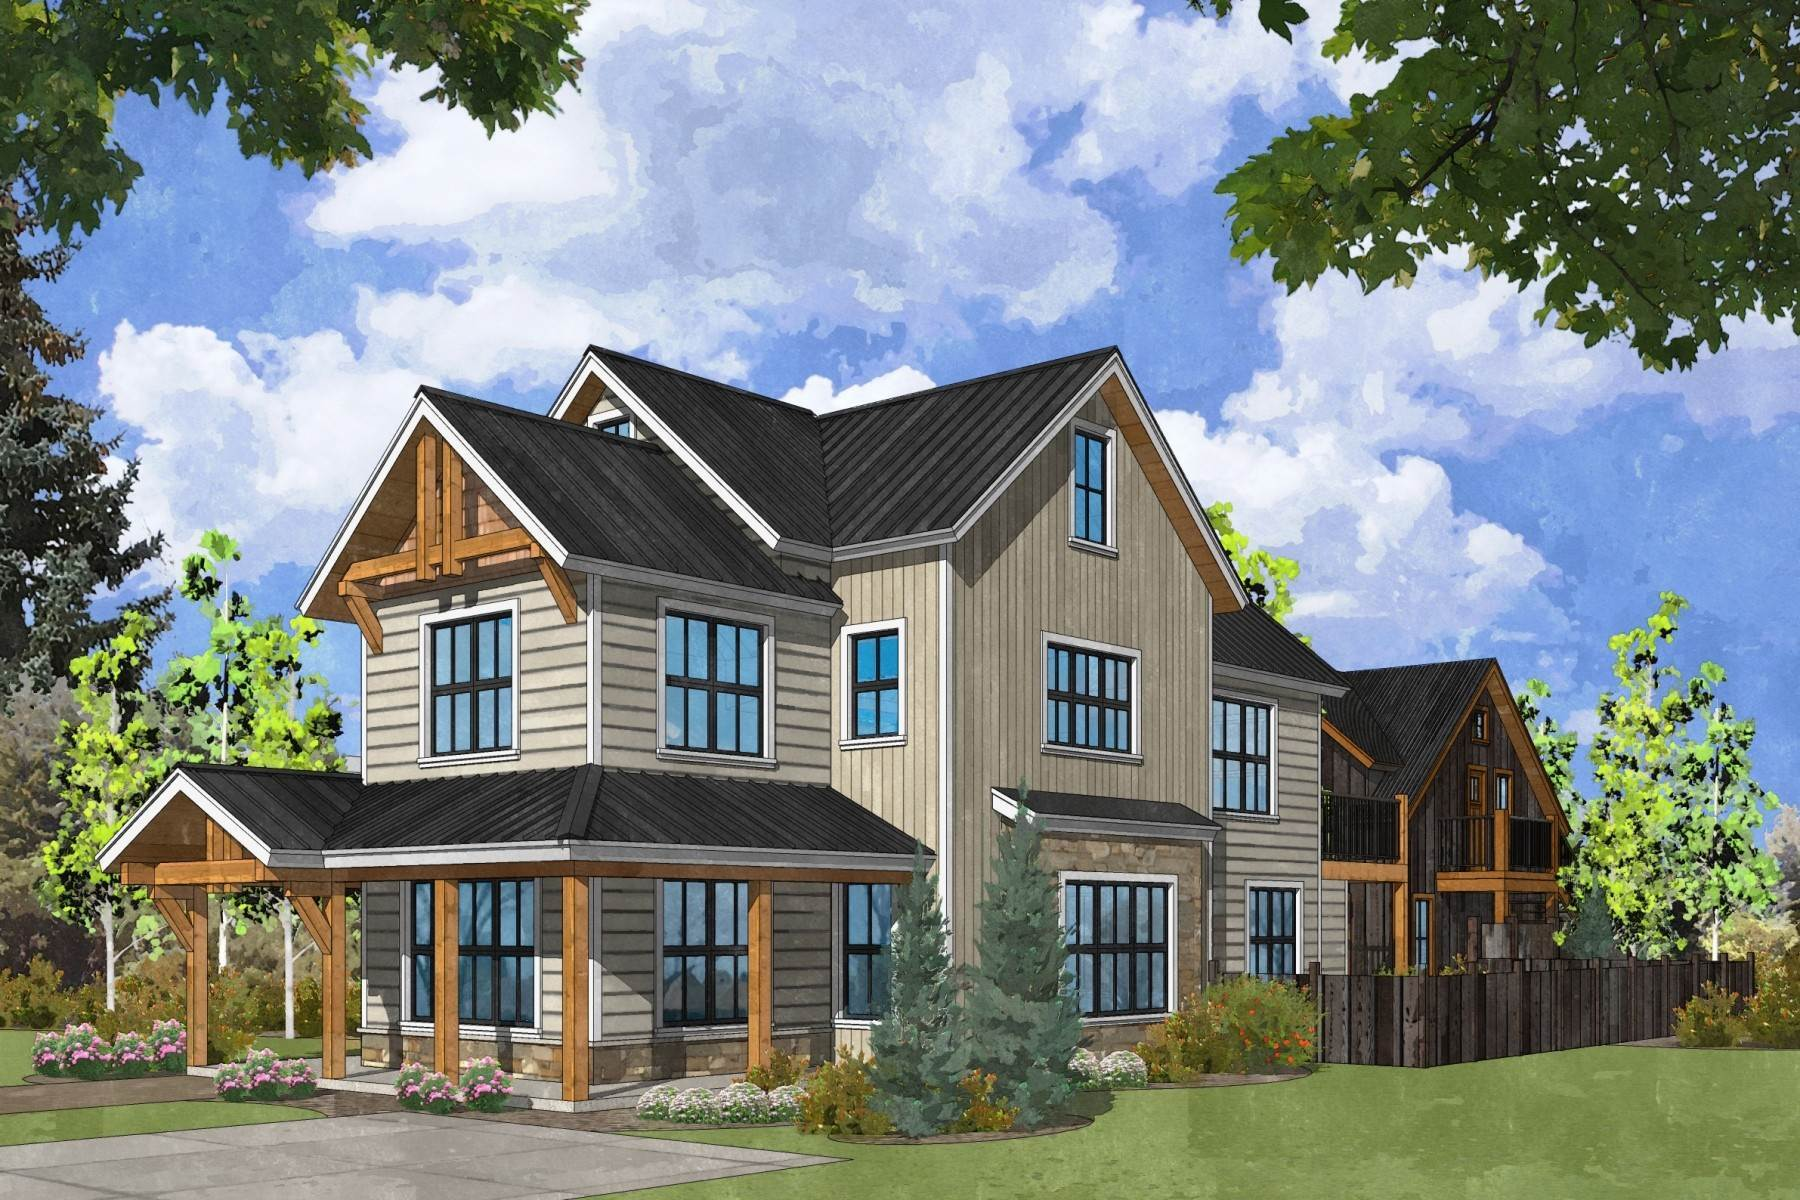 Single Family Homes for Sale at Outstanding New Five-Bedroom Home in Crested Butte 729 Whiterock Avenue Crested Butte, Colorado 81224 United States